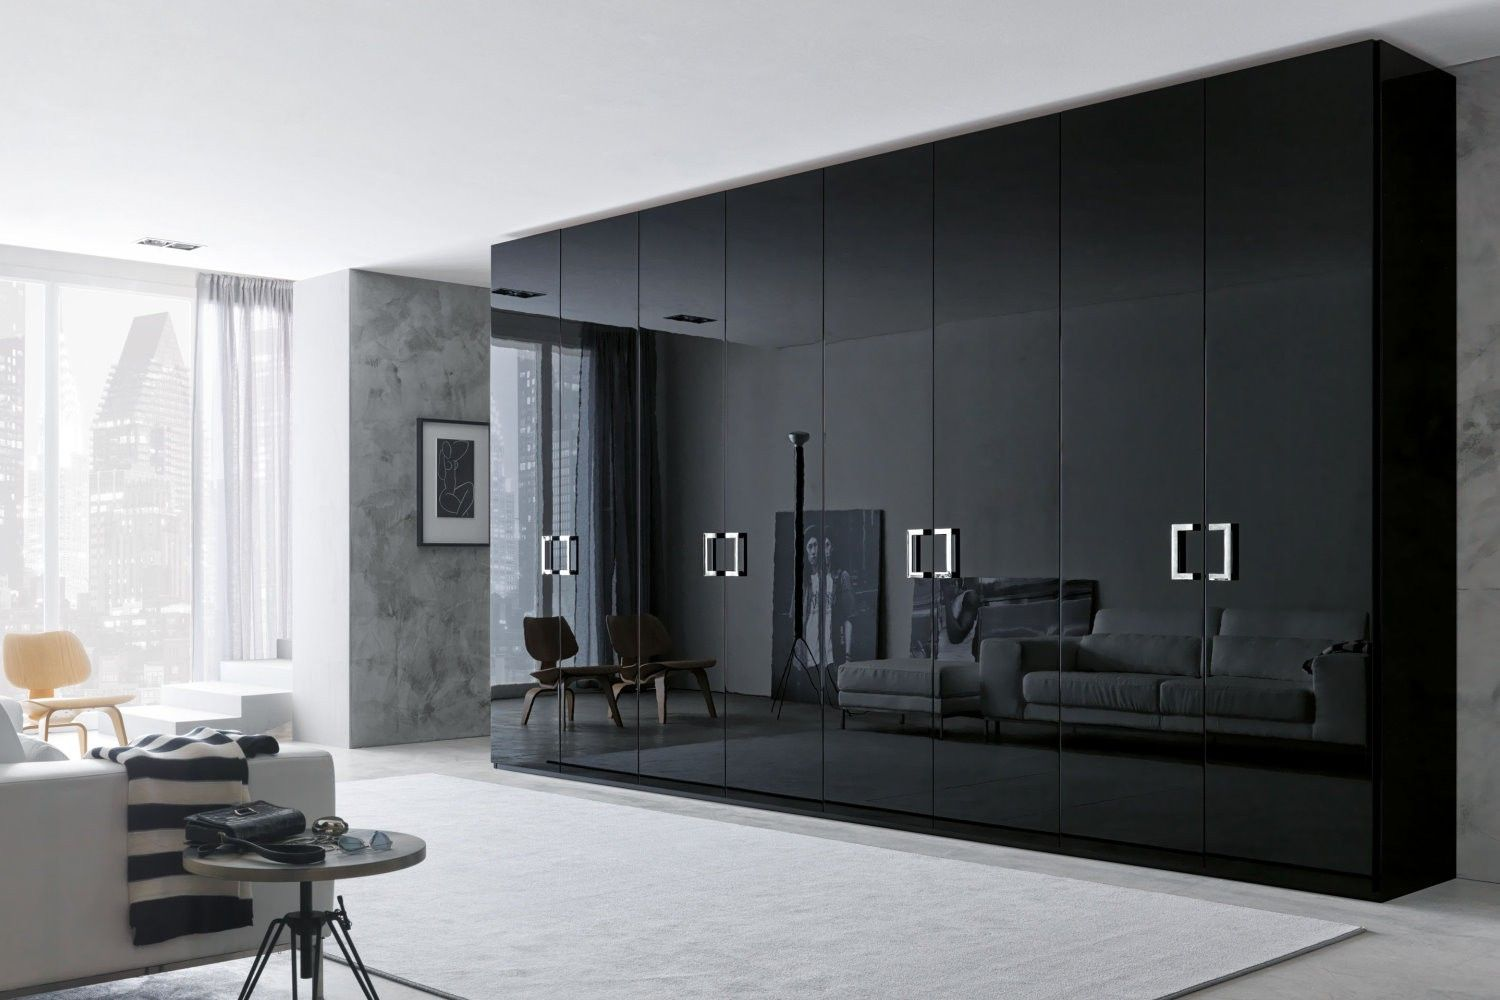 35 modern wardrobe furniture designs wardrobe design Bedroom wardrobe interior designs